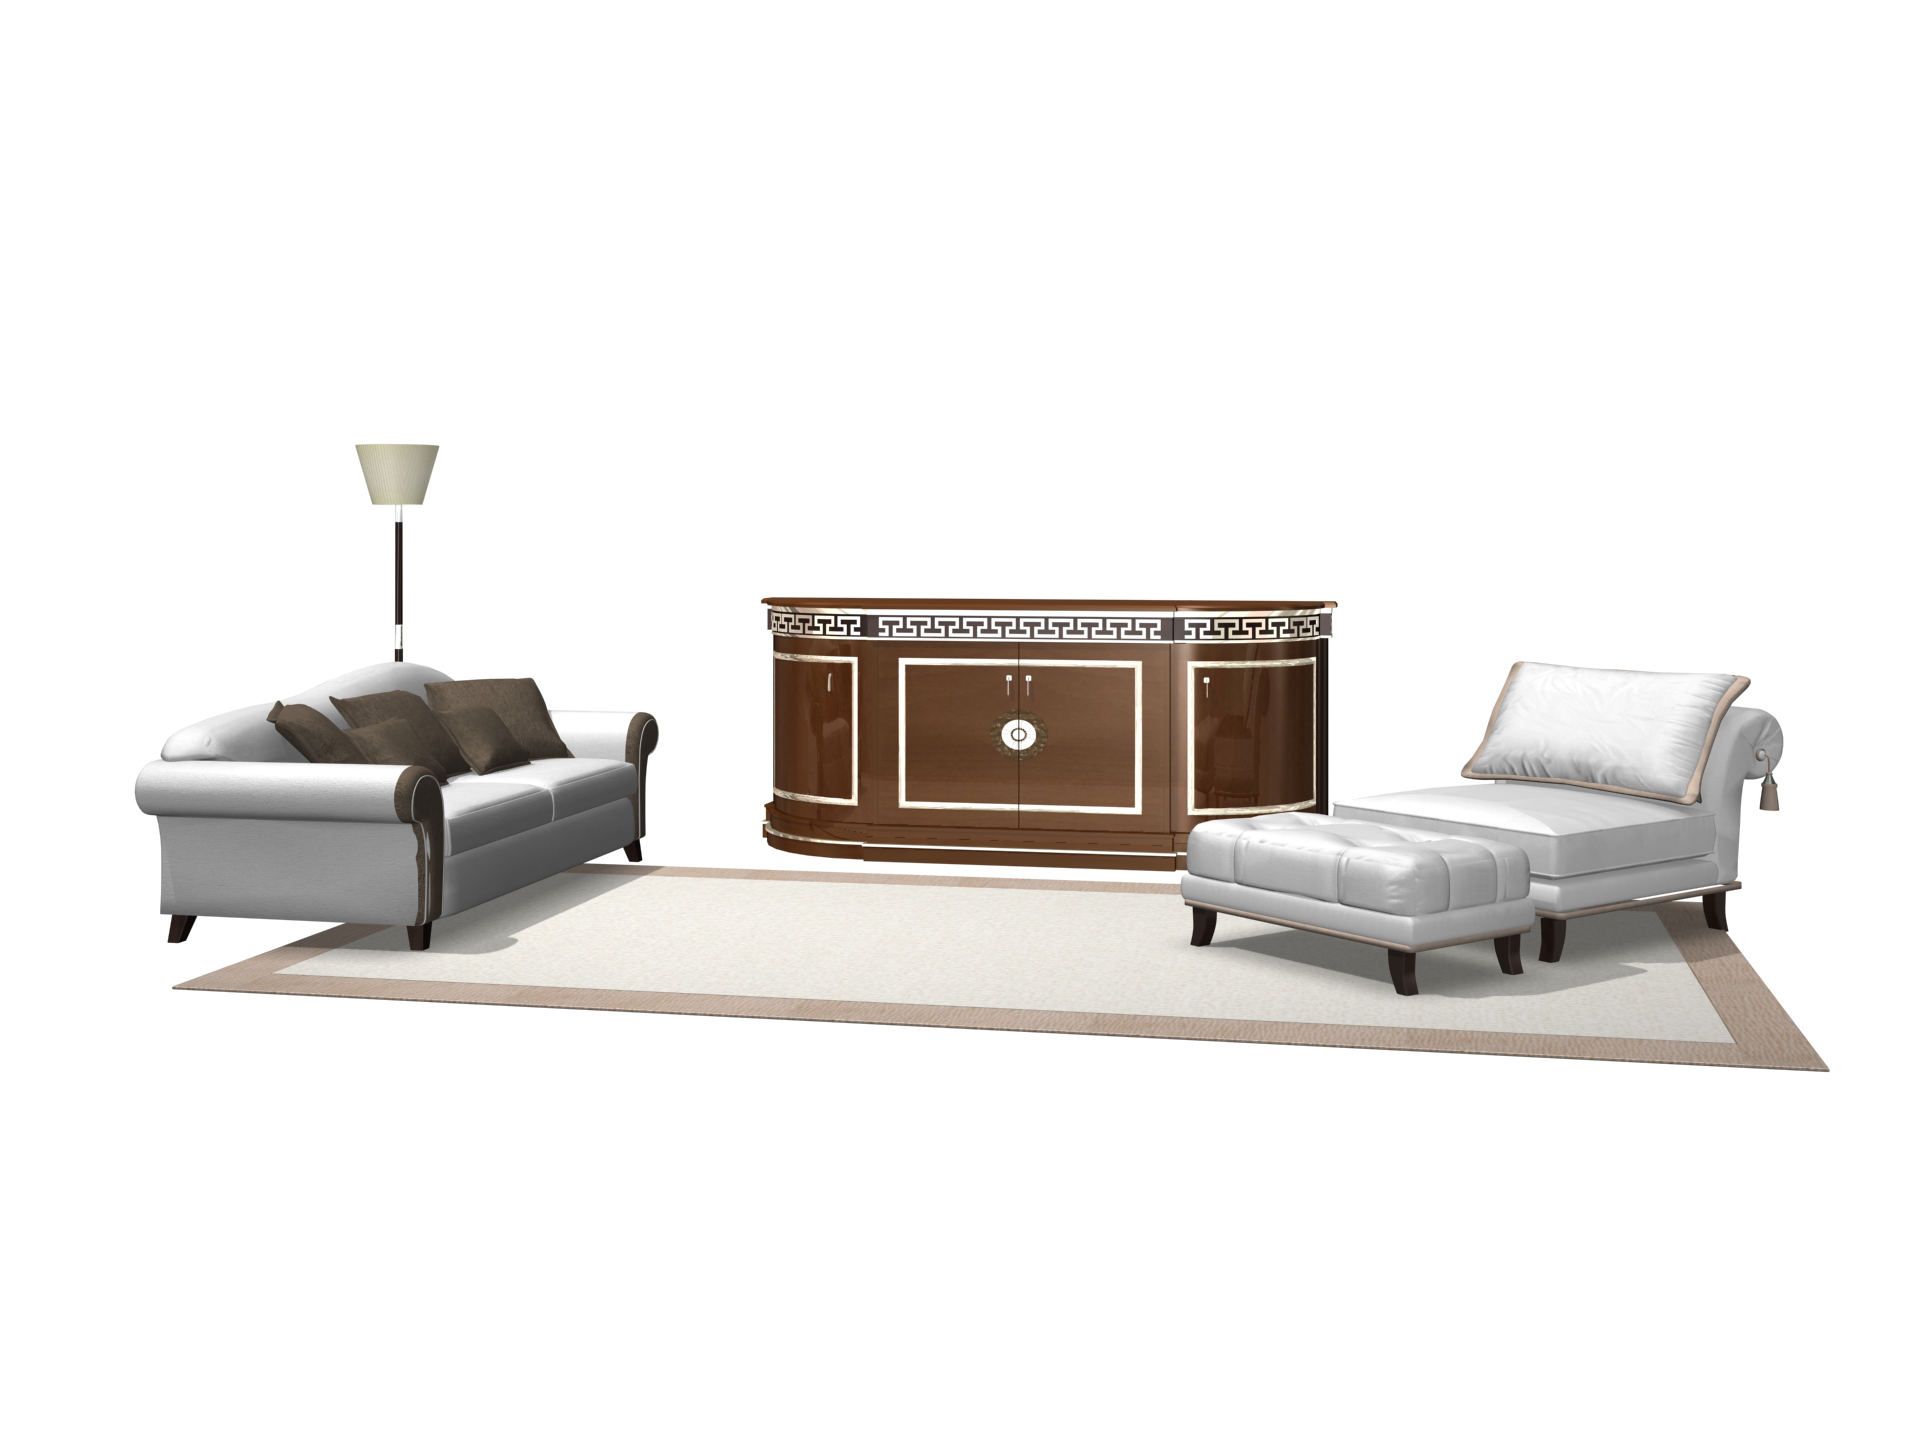 Muebles sas 003 3d model download free 3d models download for Muebles de oficina 3d model